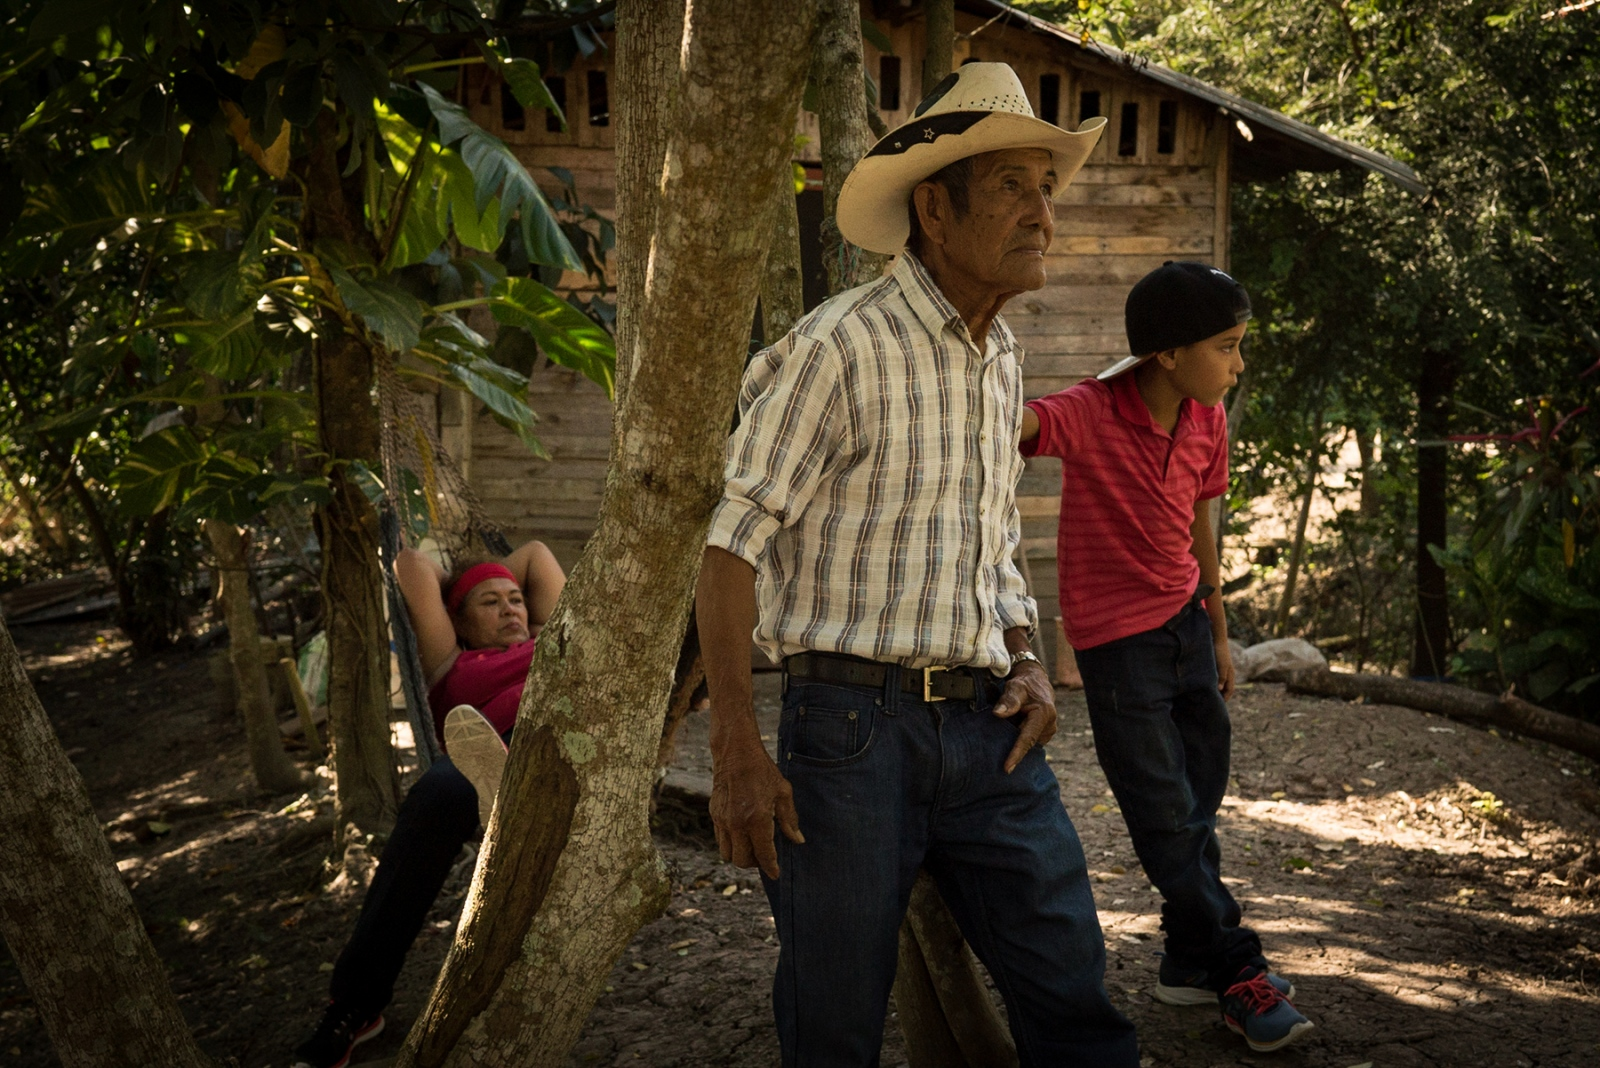 On Sundays, Gómez takes Oscar to her father's farm house, where he harvests sugarcane. A former employee of Chiquita himself, he understands his daughter's struggle. Working conditions, he said, have worsened since he retired. When he worked for the company, water was paid for, rent was provided, school expenses were covered, and entire families had access to health insurance. Today, workers are on their own.